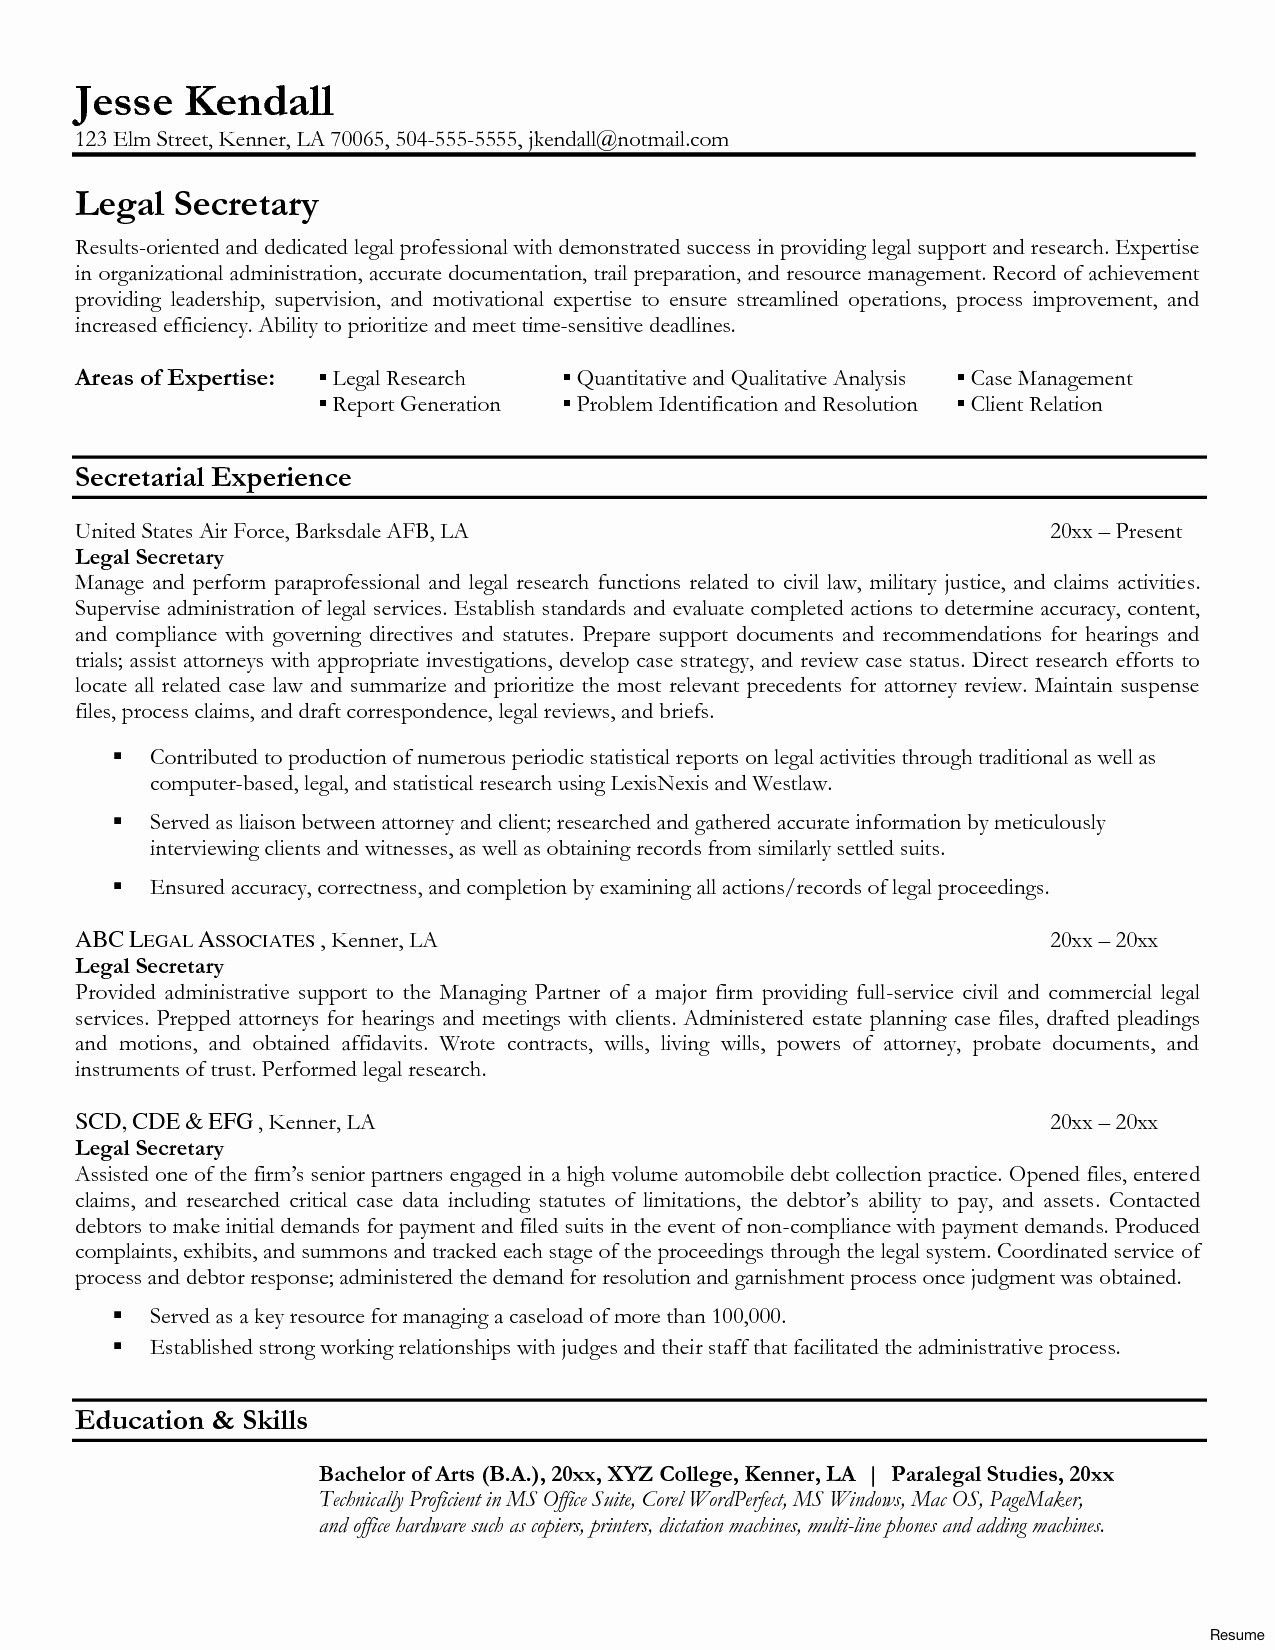 resume template best free Professional in 2020 Job